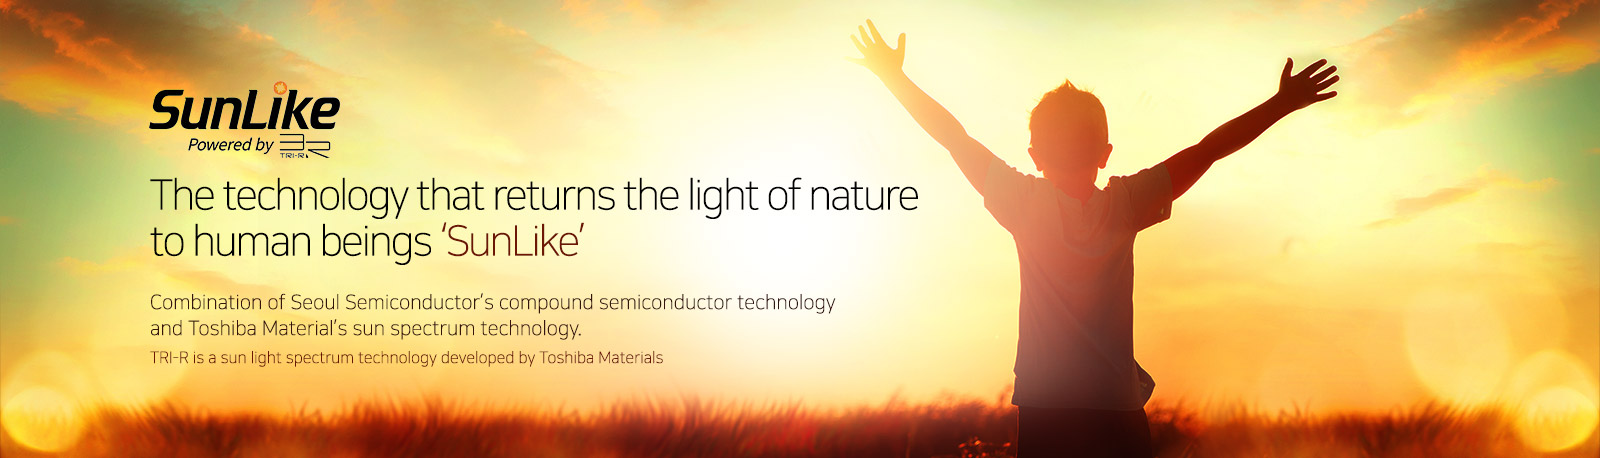 SunLike LED techology from Seoul Semiconductor and Toshiba